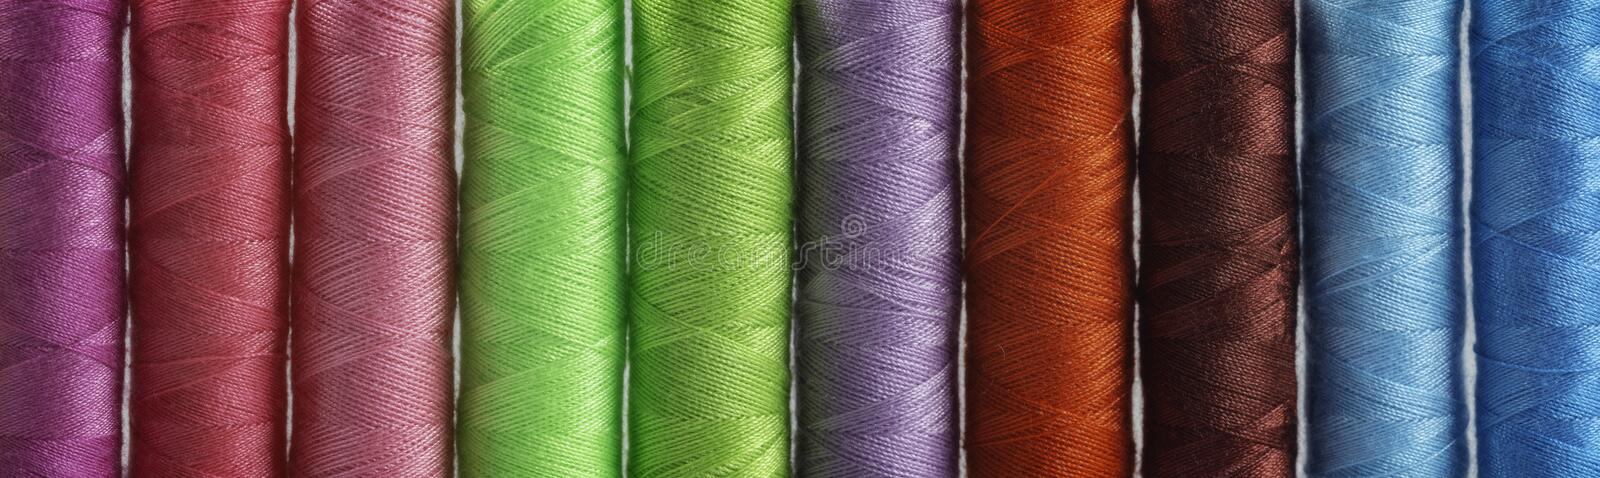 Detail view of differently colored spools of thread royalty free stock photography